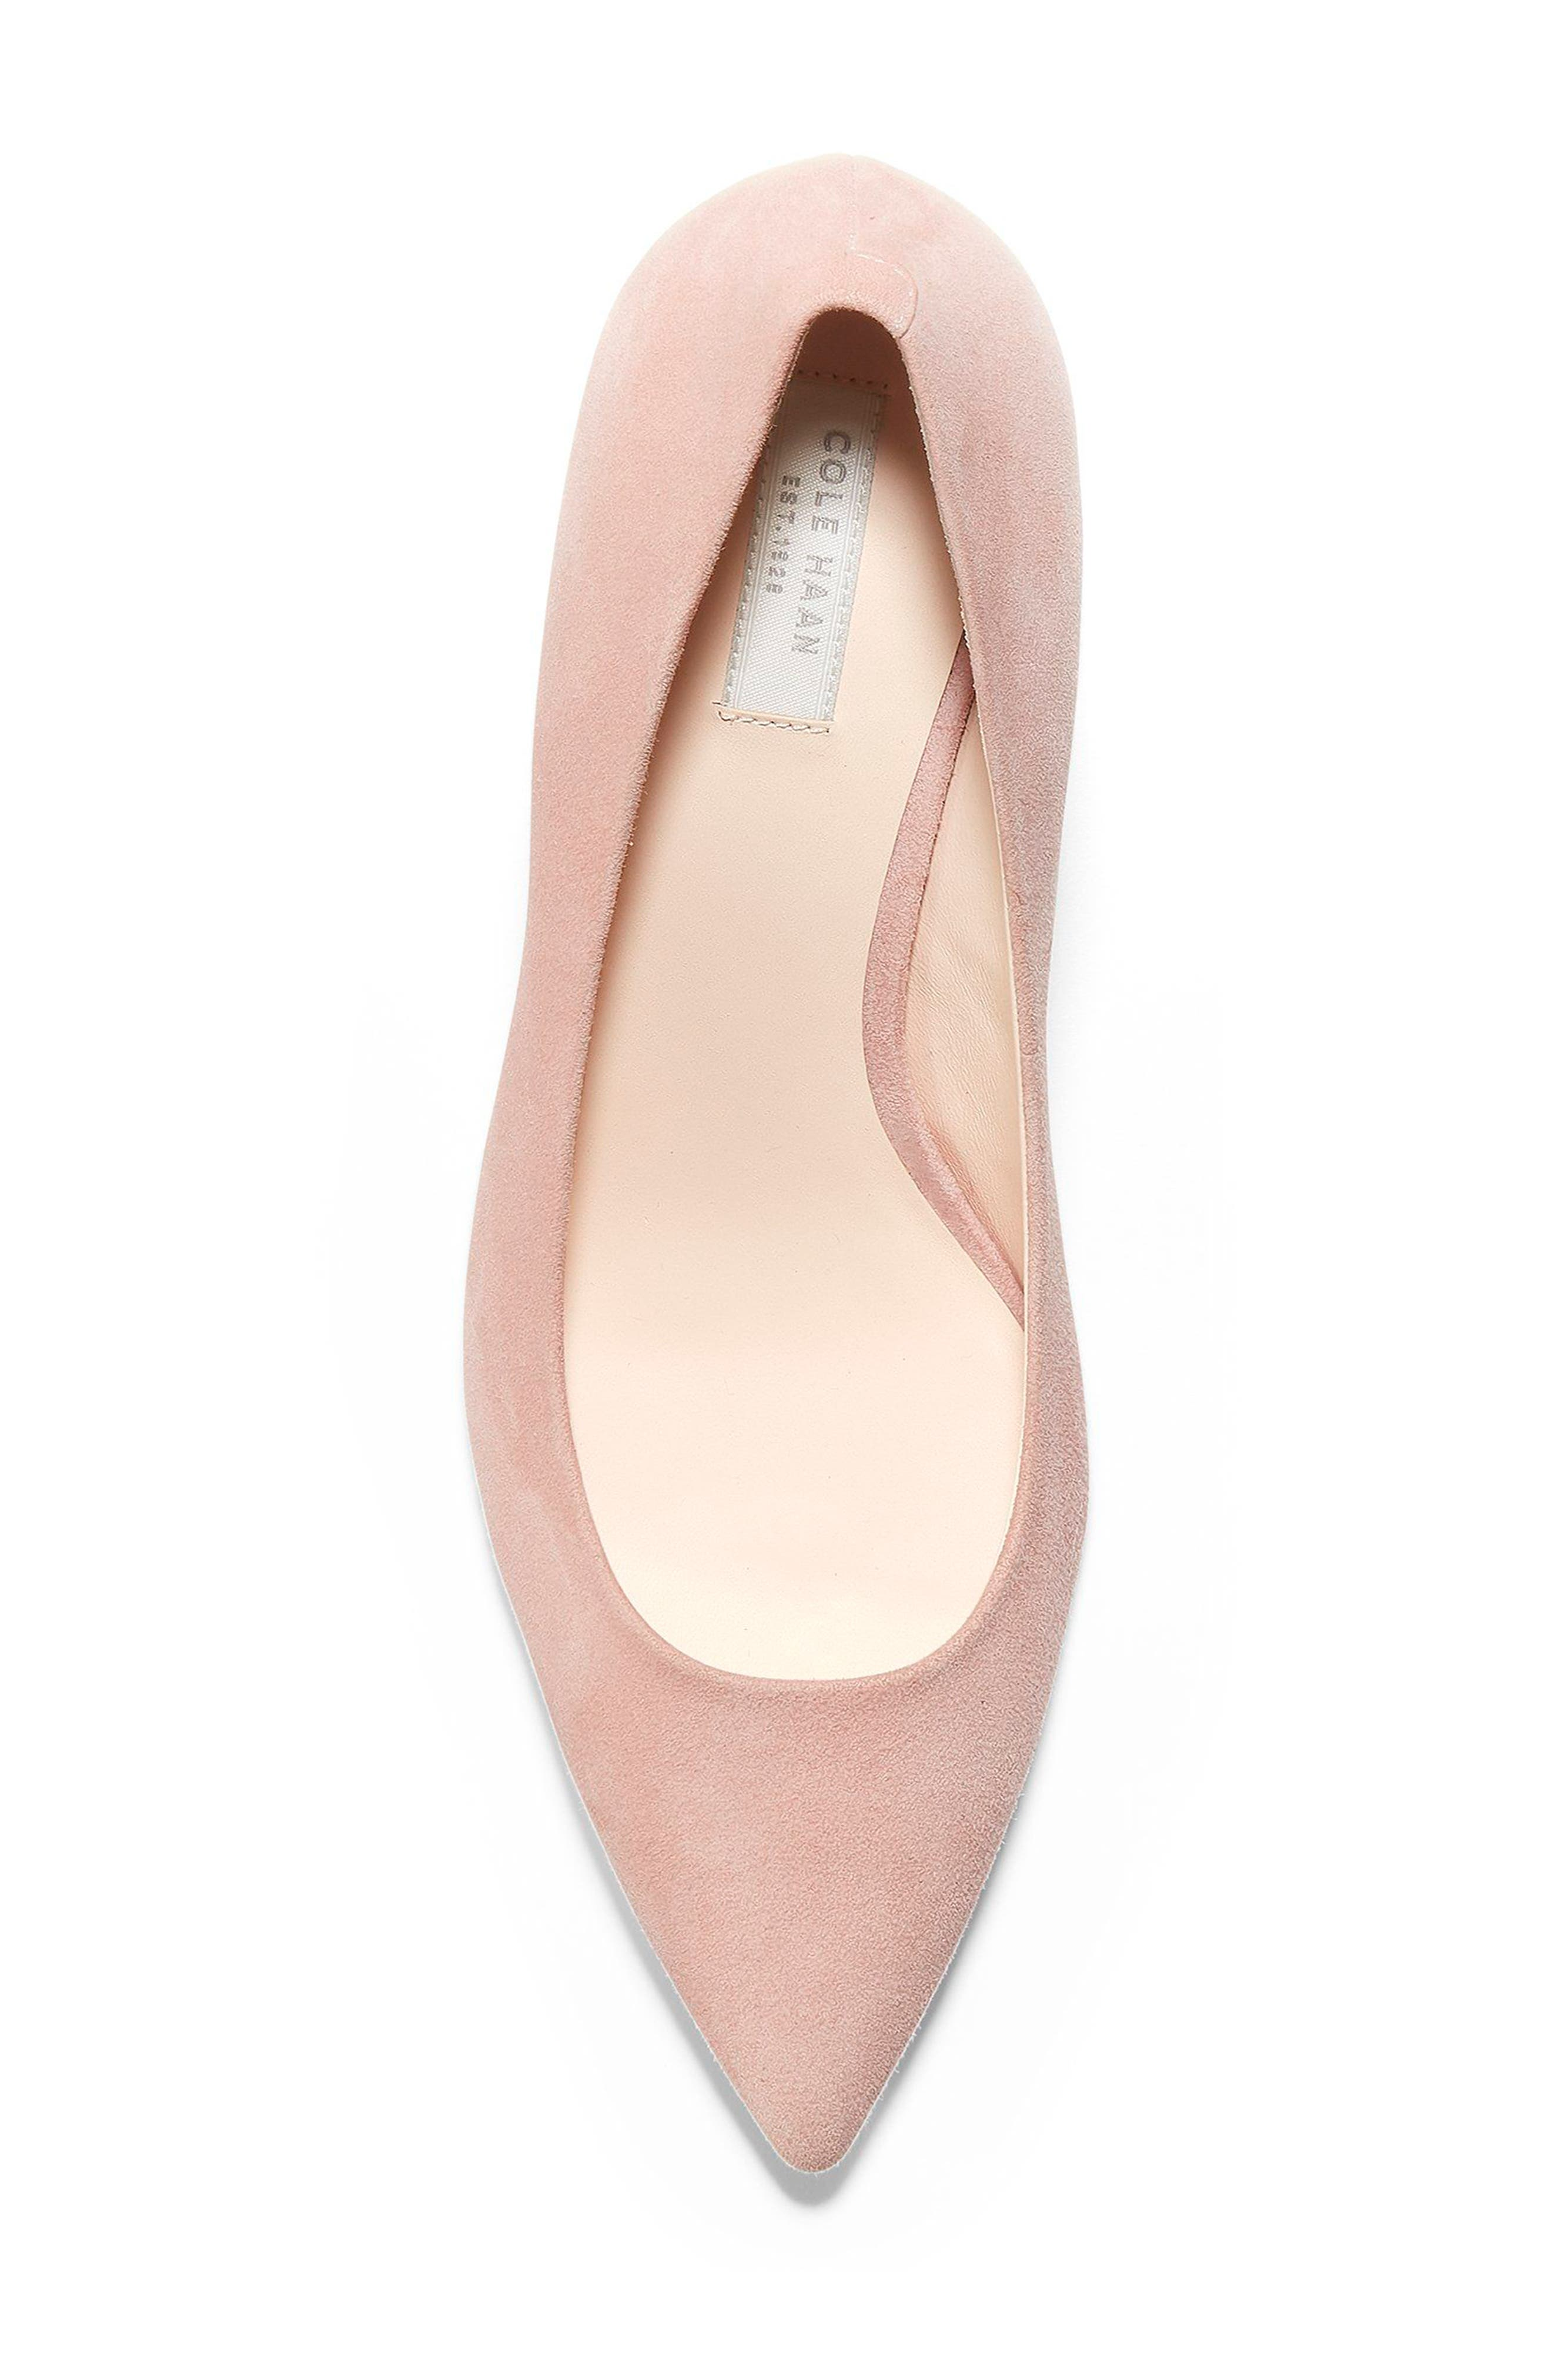 Vesta Pointy Toe Pump,                             Alternate thumbnail 5, color,                             SILVER PINK SUEDE